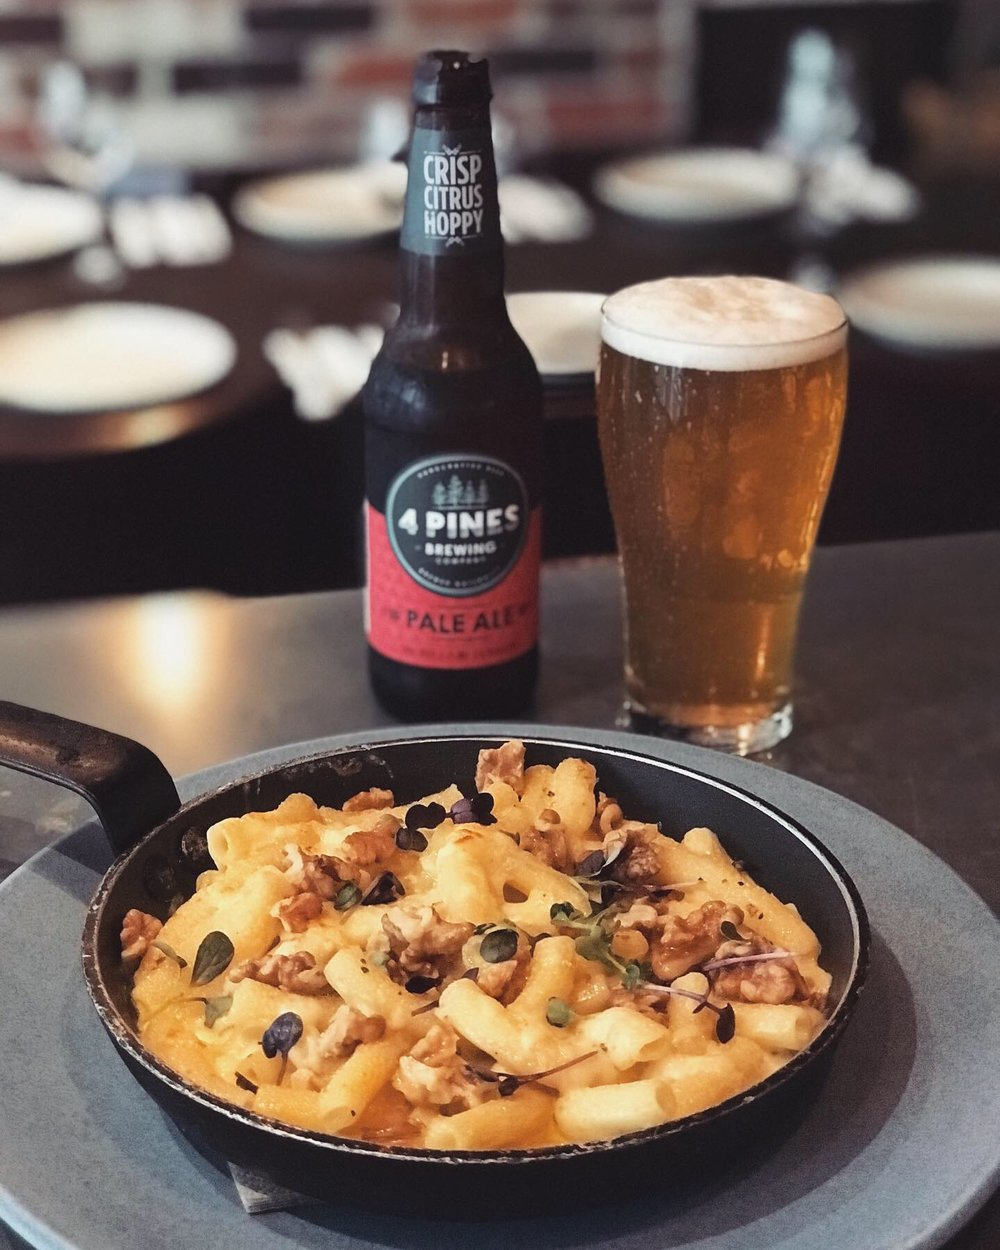 10-16 April - ~ Macc's Mac & Cheese ~⠀⠀House-made truffled macaroni in a gooey four-cheese sauce with taleggio, gorgonzola, Parmigiano Reggiano and fiordilatte. Baked until golden and topped with toasted walnuts.⠀⠀Matched with one of the most hip craft beers on the Australian scene: Four Pines Pale Ale.⠀